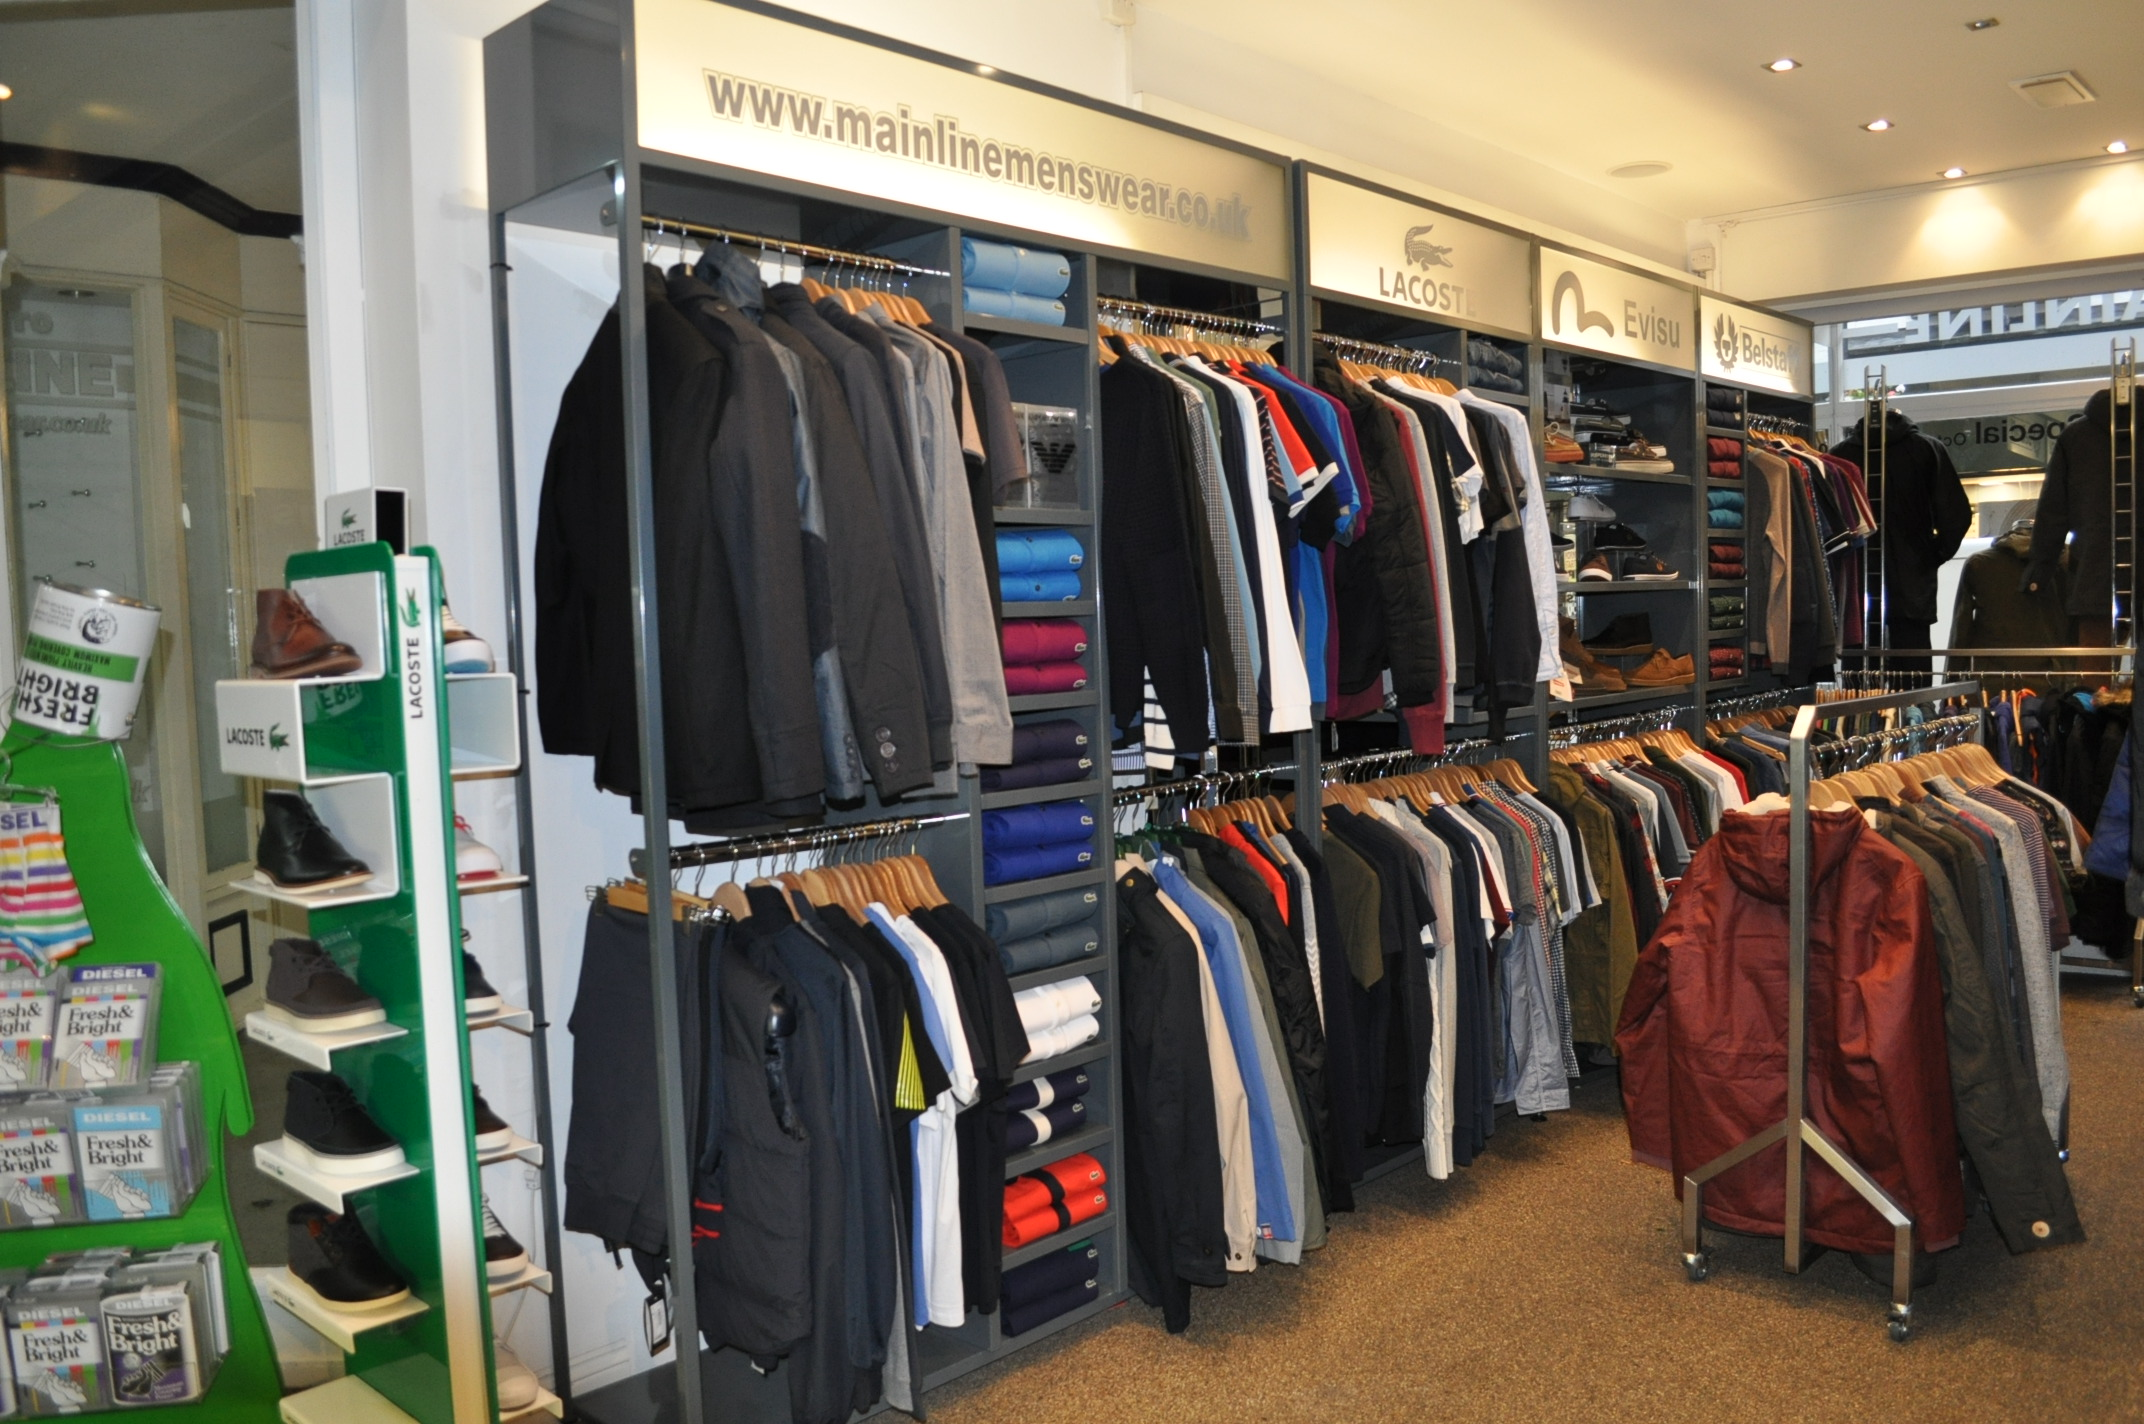 Barbour Mens Designer Jackets and Clothing. Shop Barbour designer clothing with Mainline Menswear. Here you can expect to find a great range of Barbour t-shirts, shirts, jackets and footwear for sale.